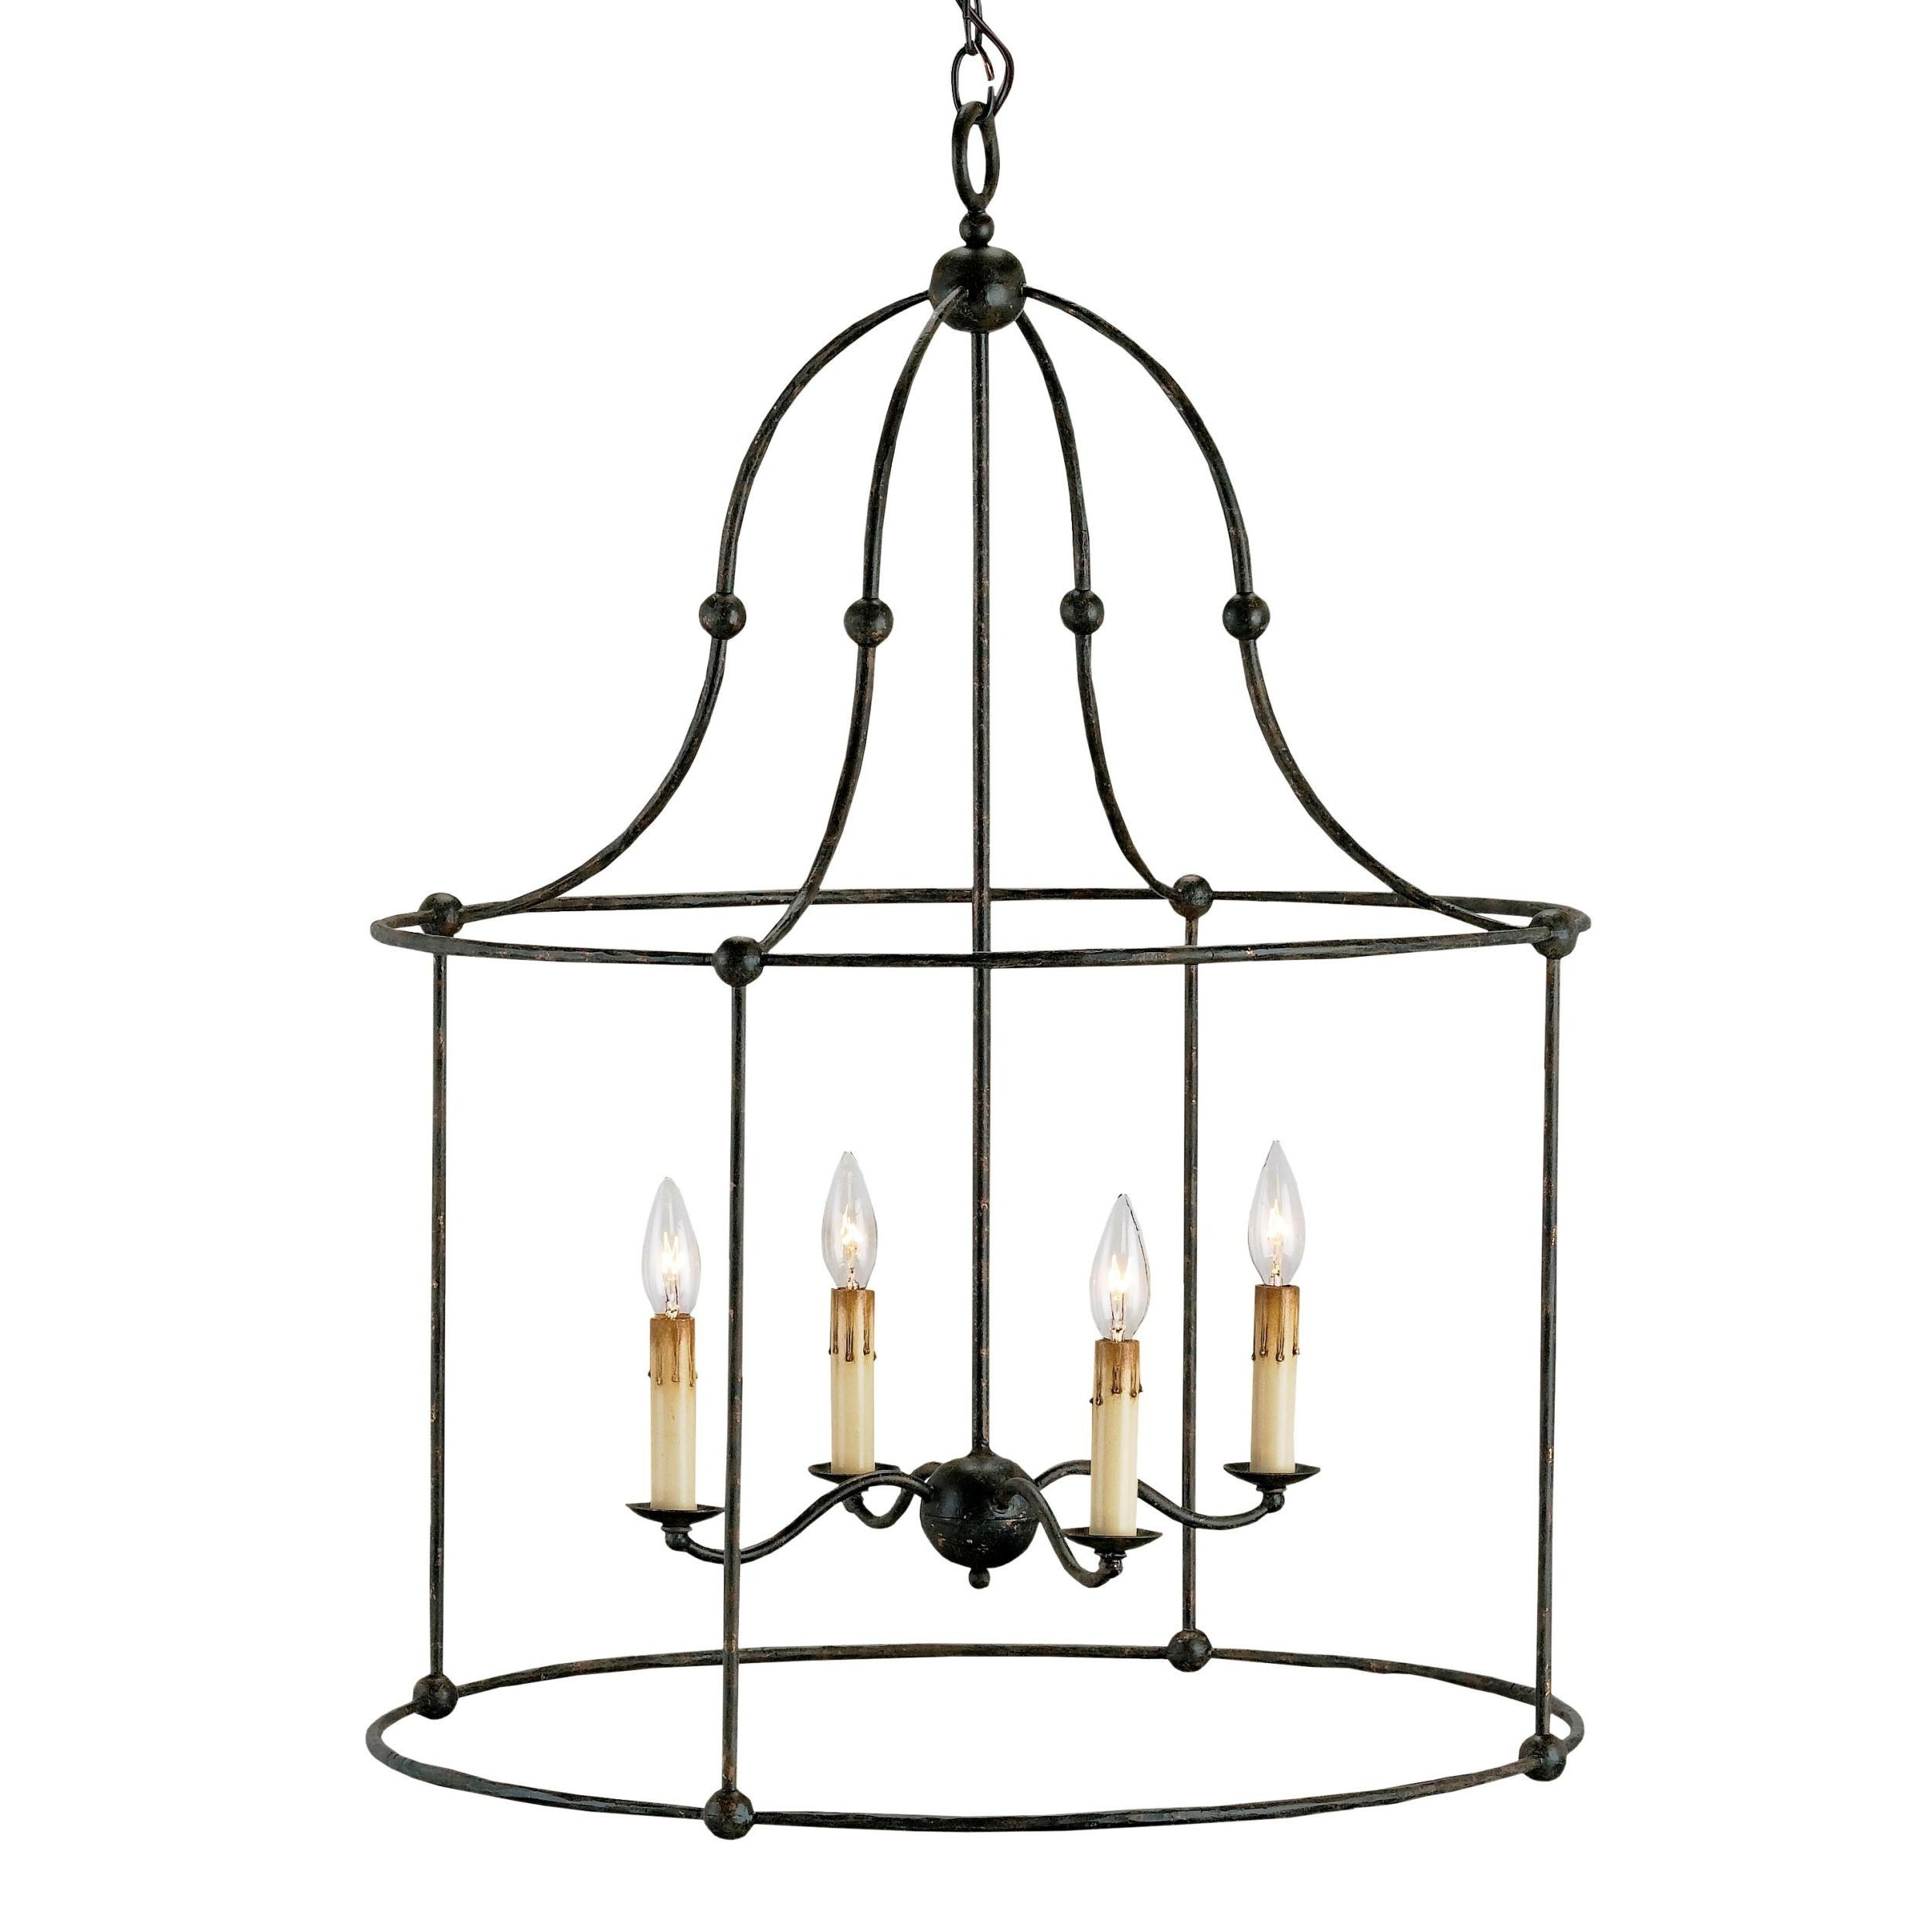 Wrought iron lantern by currey and company lighting pinterest wrought iron lantern by currey and company aloadofball Gallery